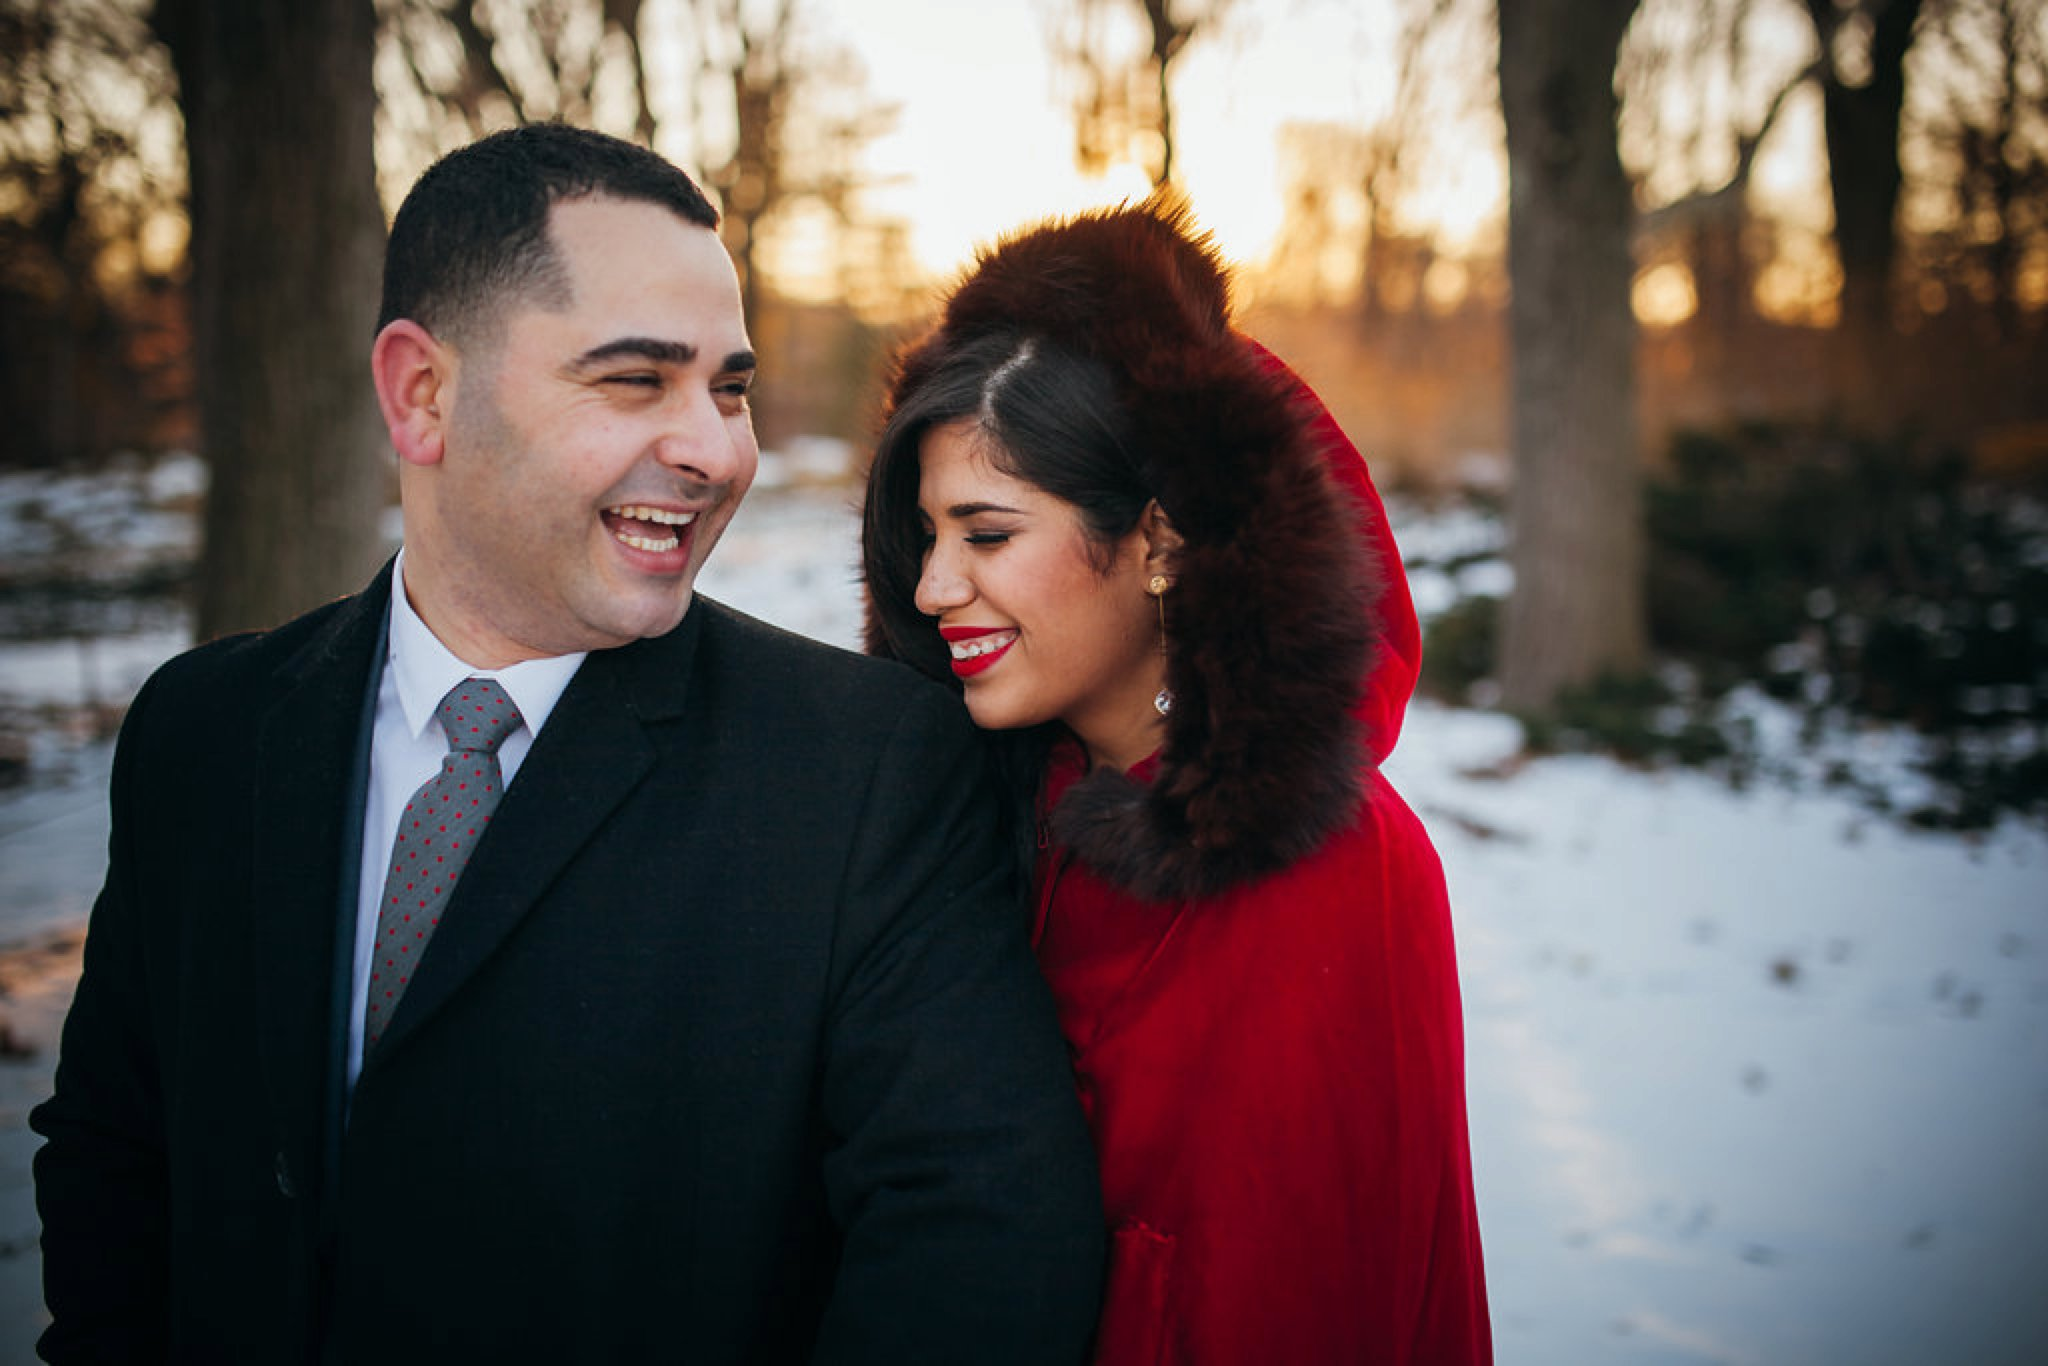 Feminist Wedding Photography Carly Romeo Photography Richmond VA Engagement Couple Shoot Advice Comfortable Planning How To